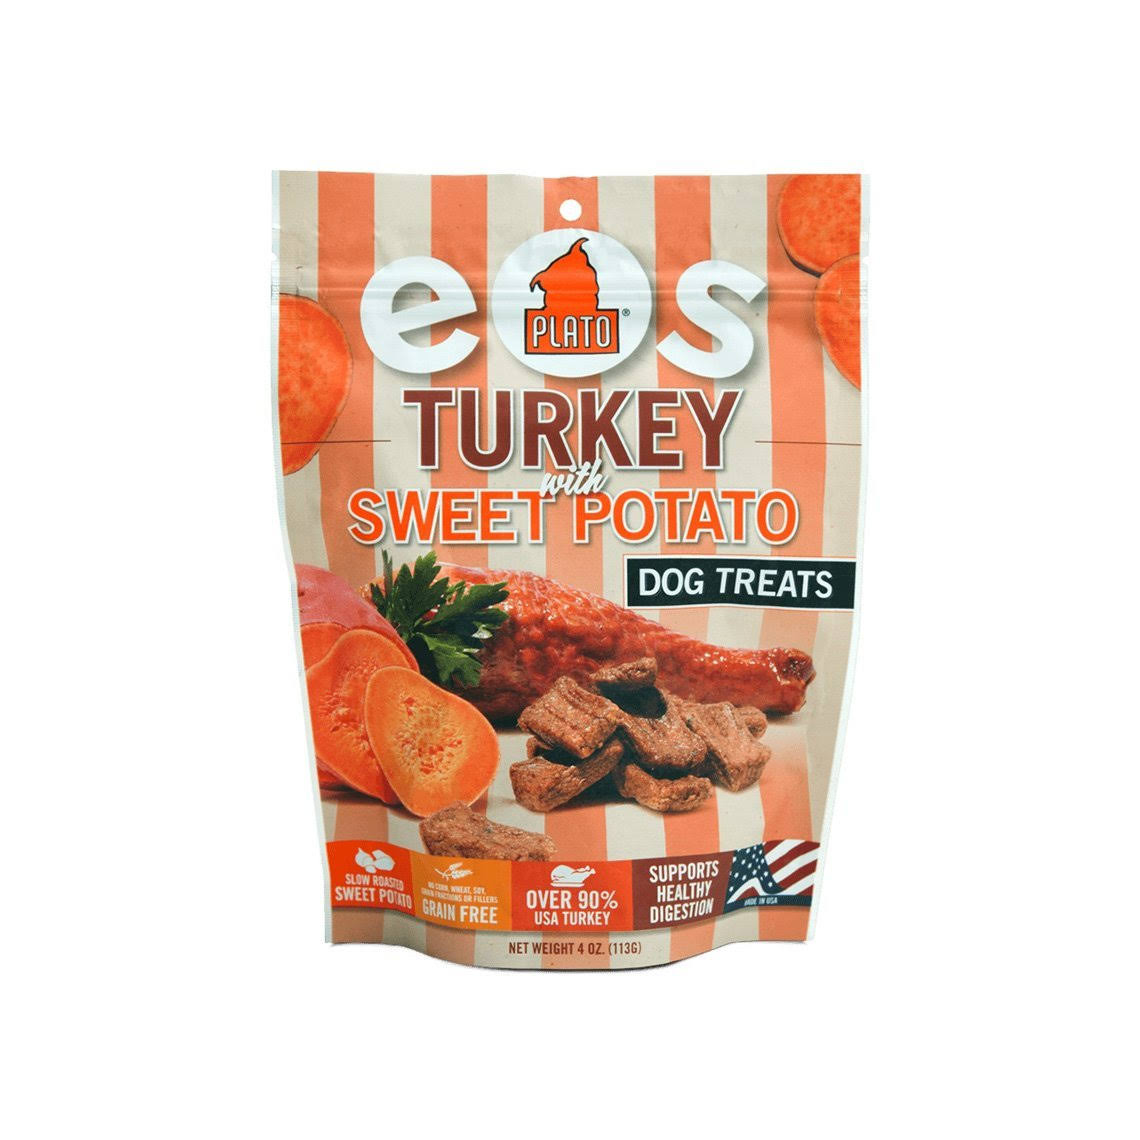 Plato Pet Treat Turkey With Sweet Potato Real Strips Dog Treat - 4 oz pouch